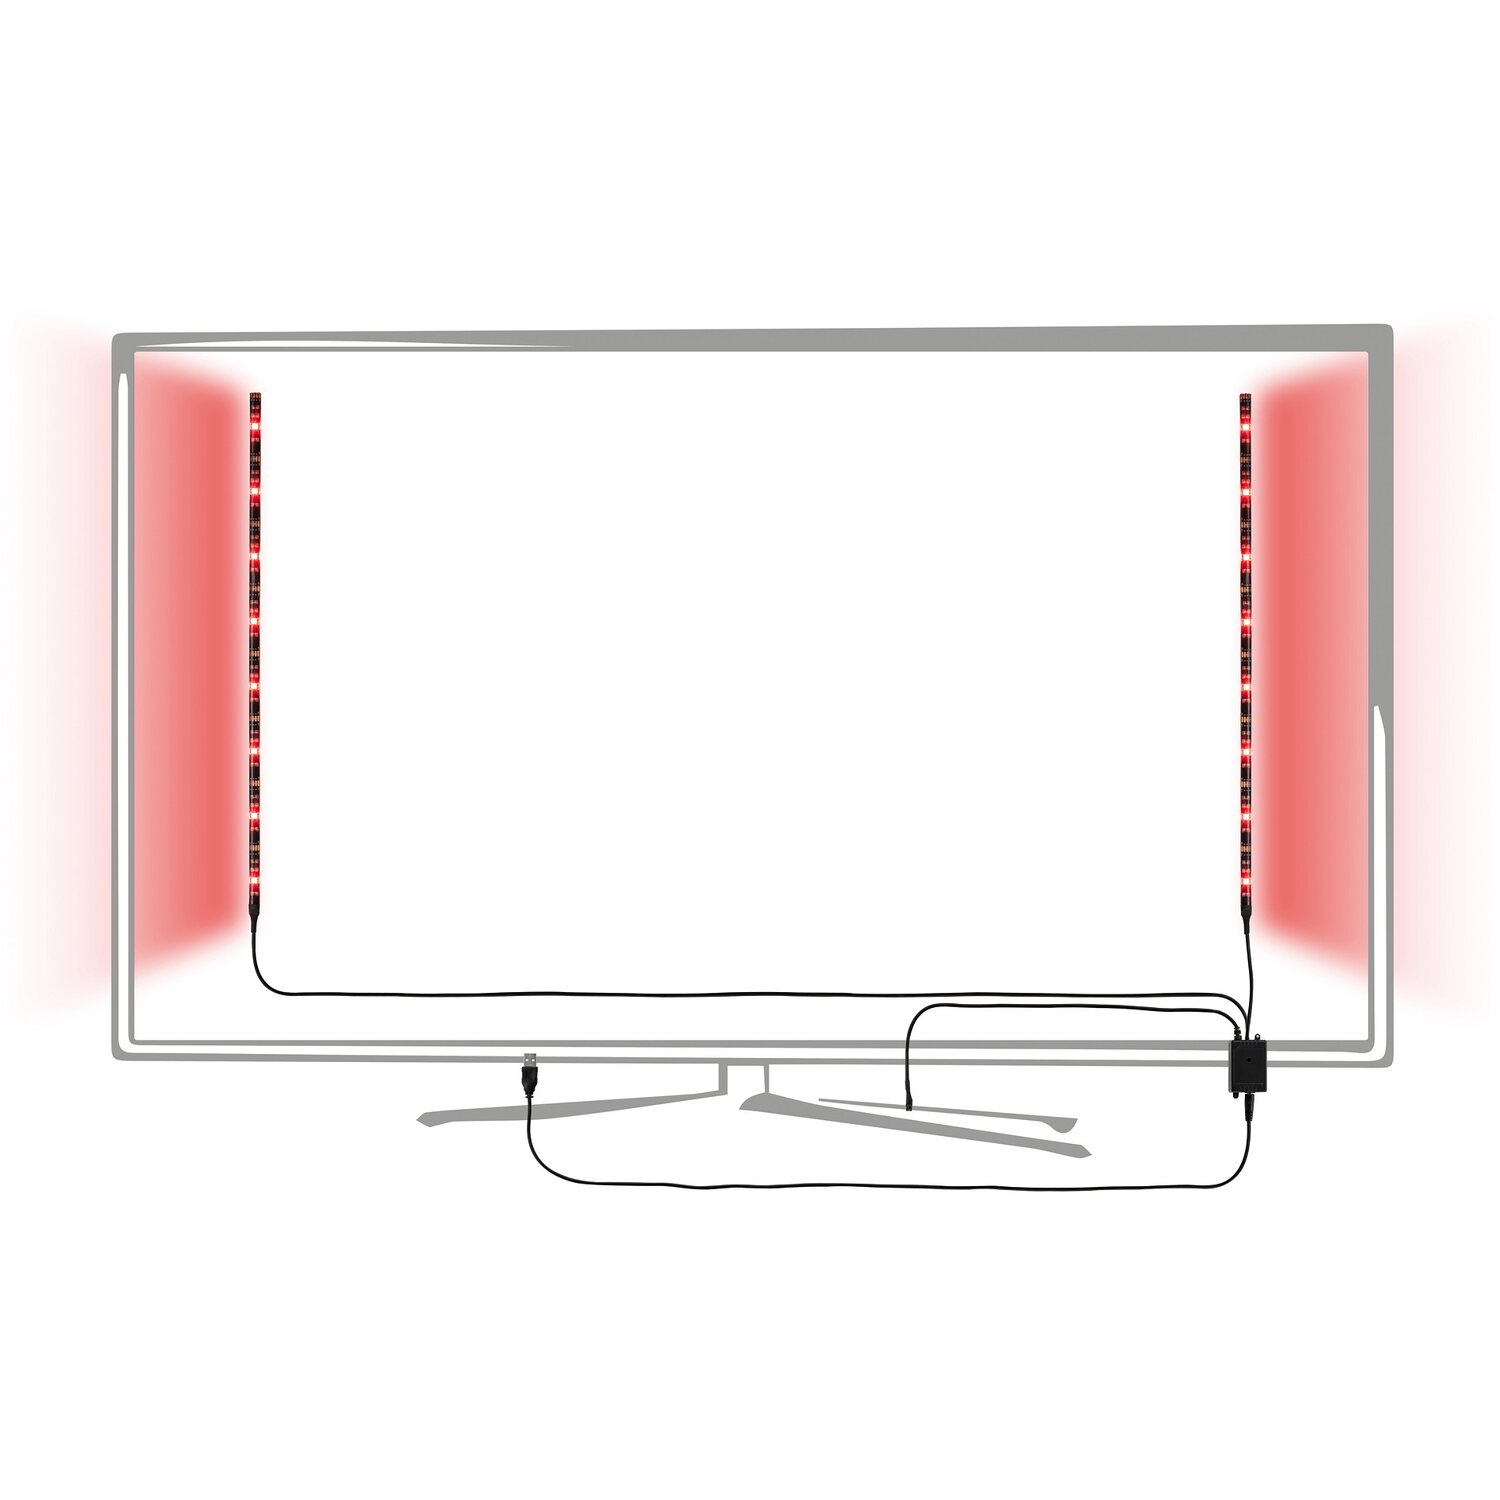 paulmann led strip set 2 x 50 cm rgb mit usb anschluss eek a a kaufen bei obi. Black Bedroom Furniture Sets. Home Design Ideas